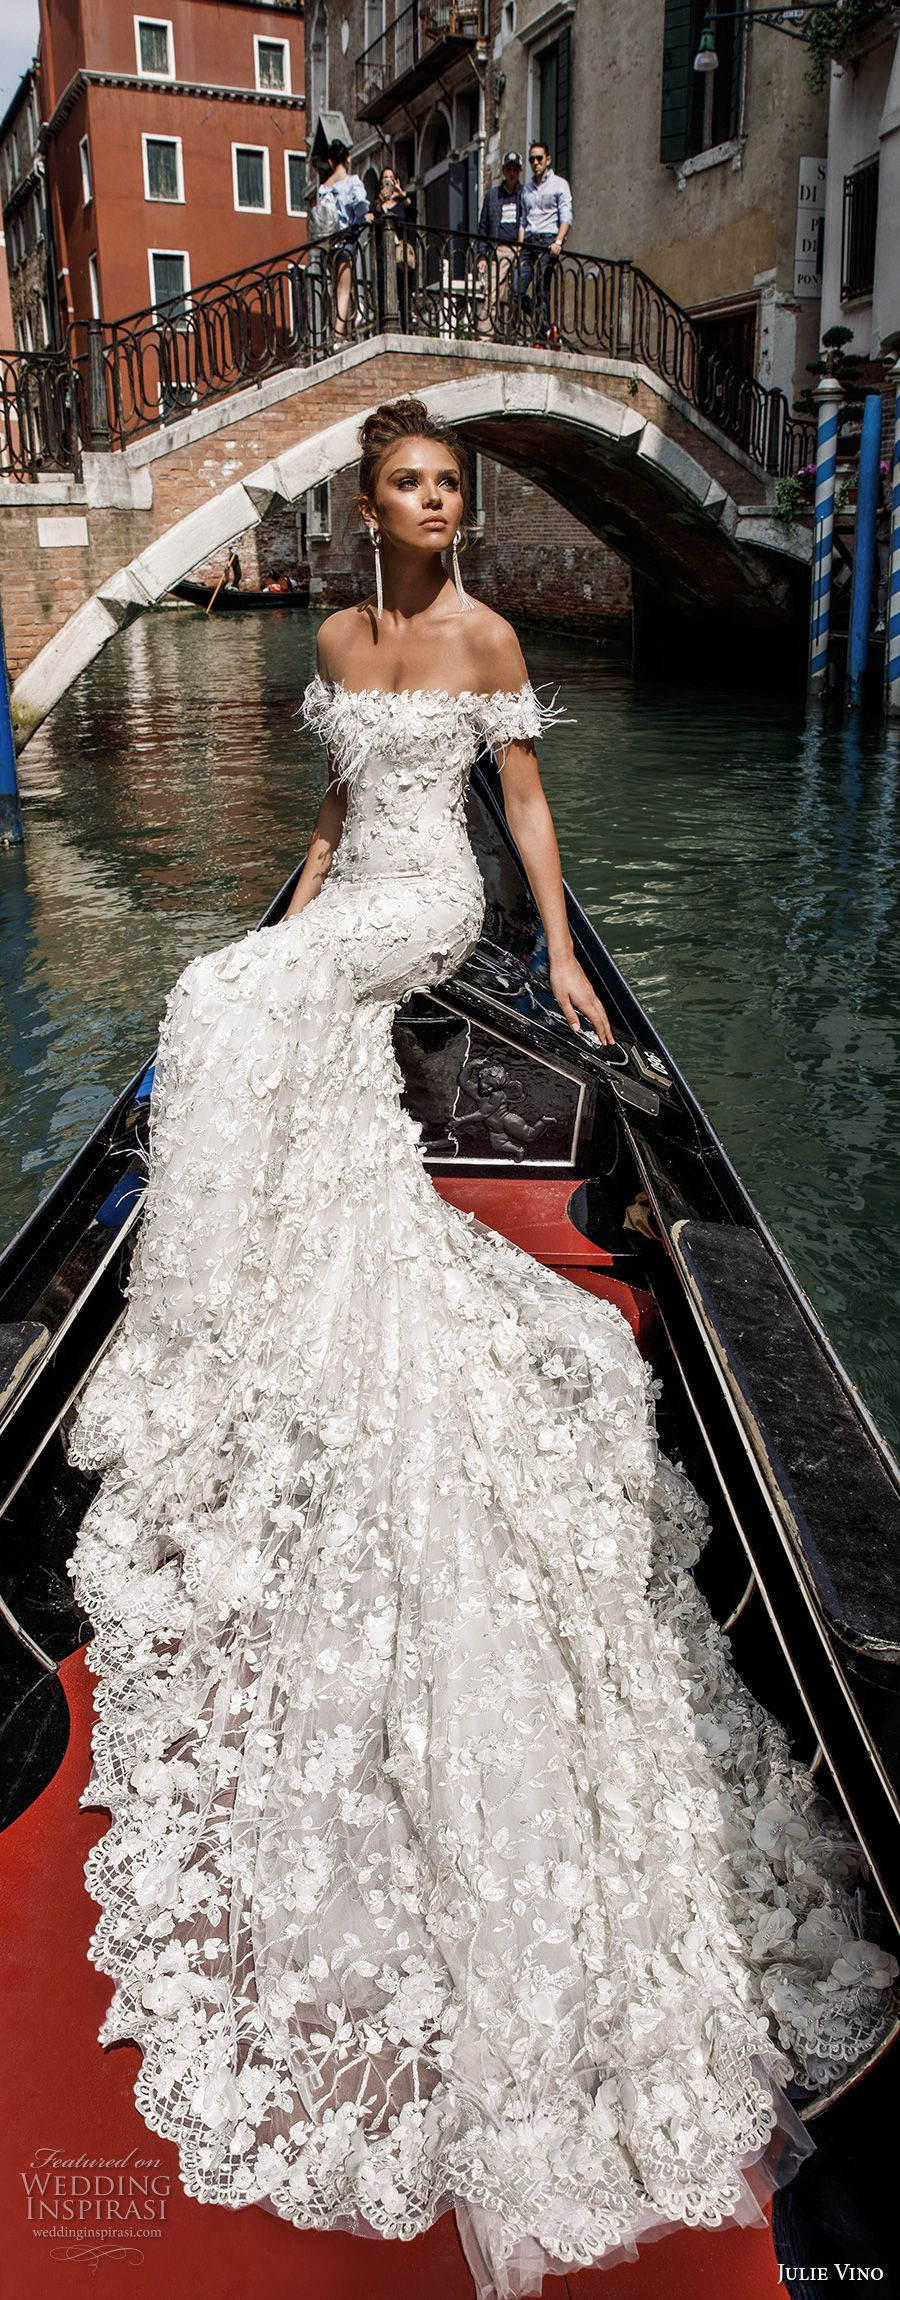 Julie vino spring wedding dresses u ucveneziaud bridal collection